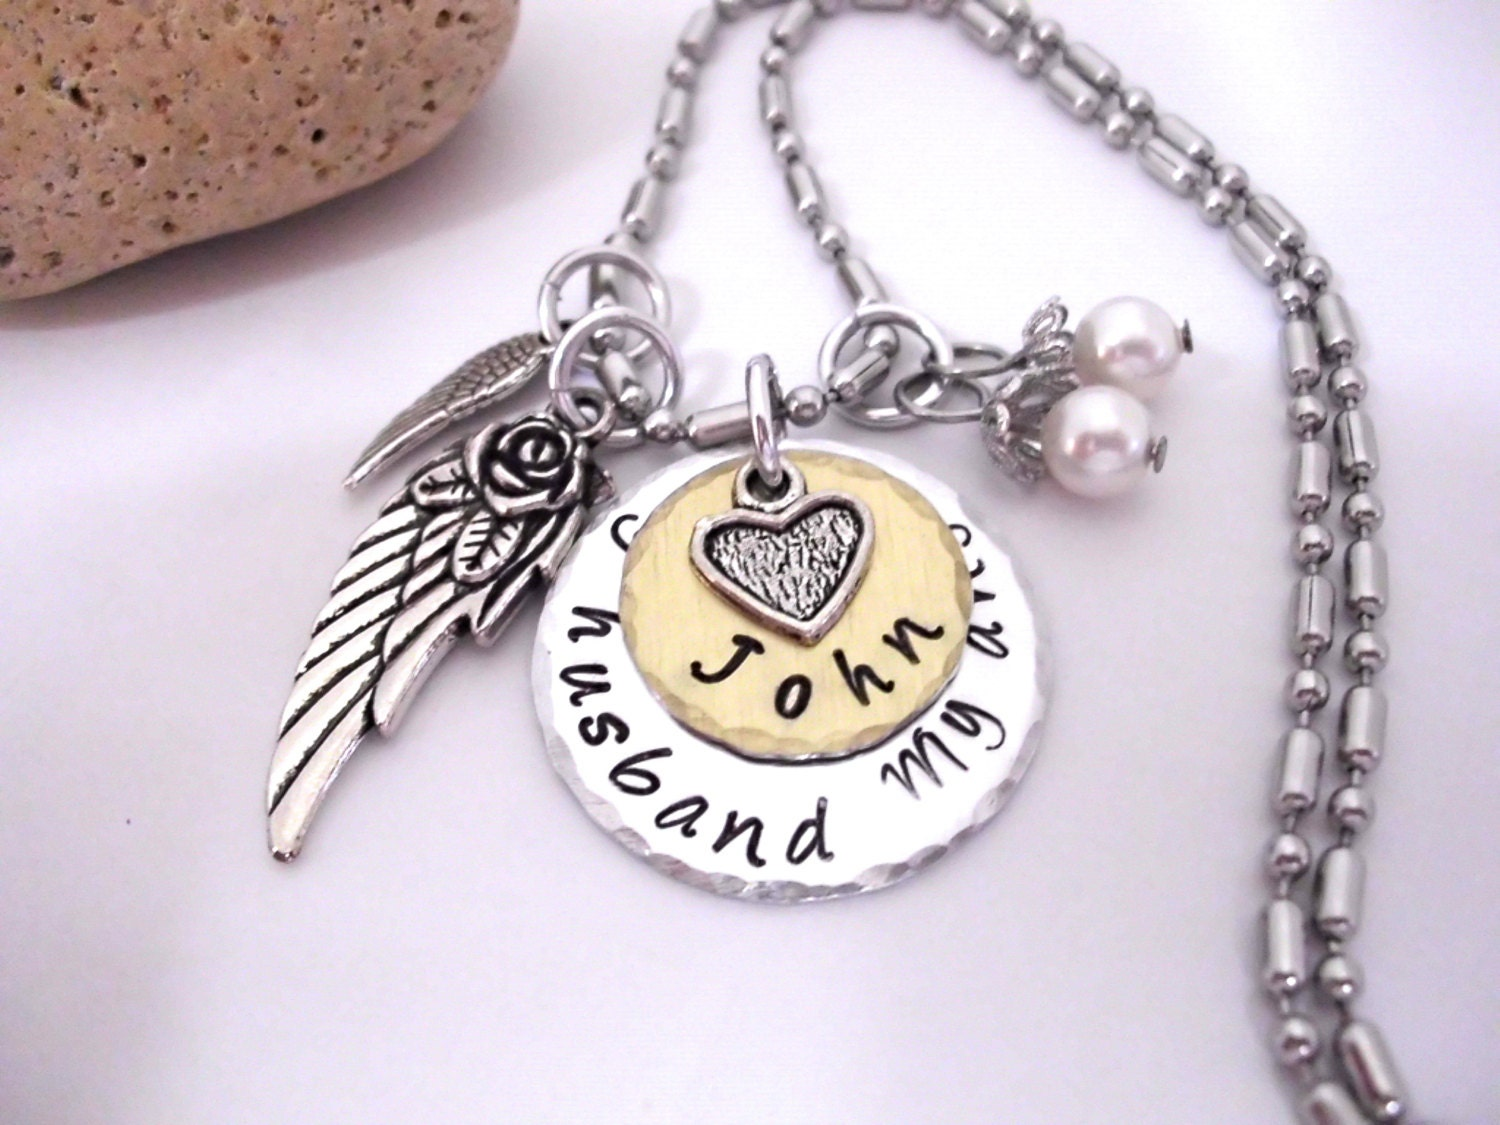 pendant stamped of loss infant angels memorial necklace jewelry people hand dream products most